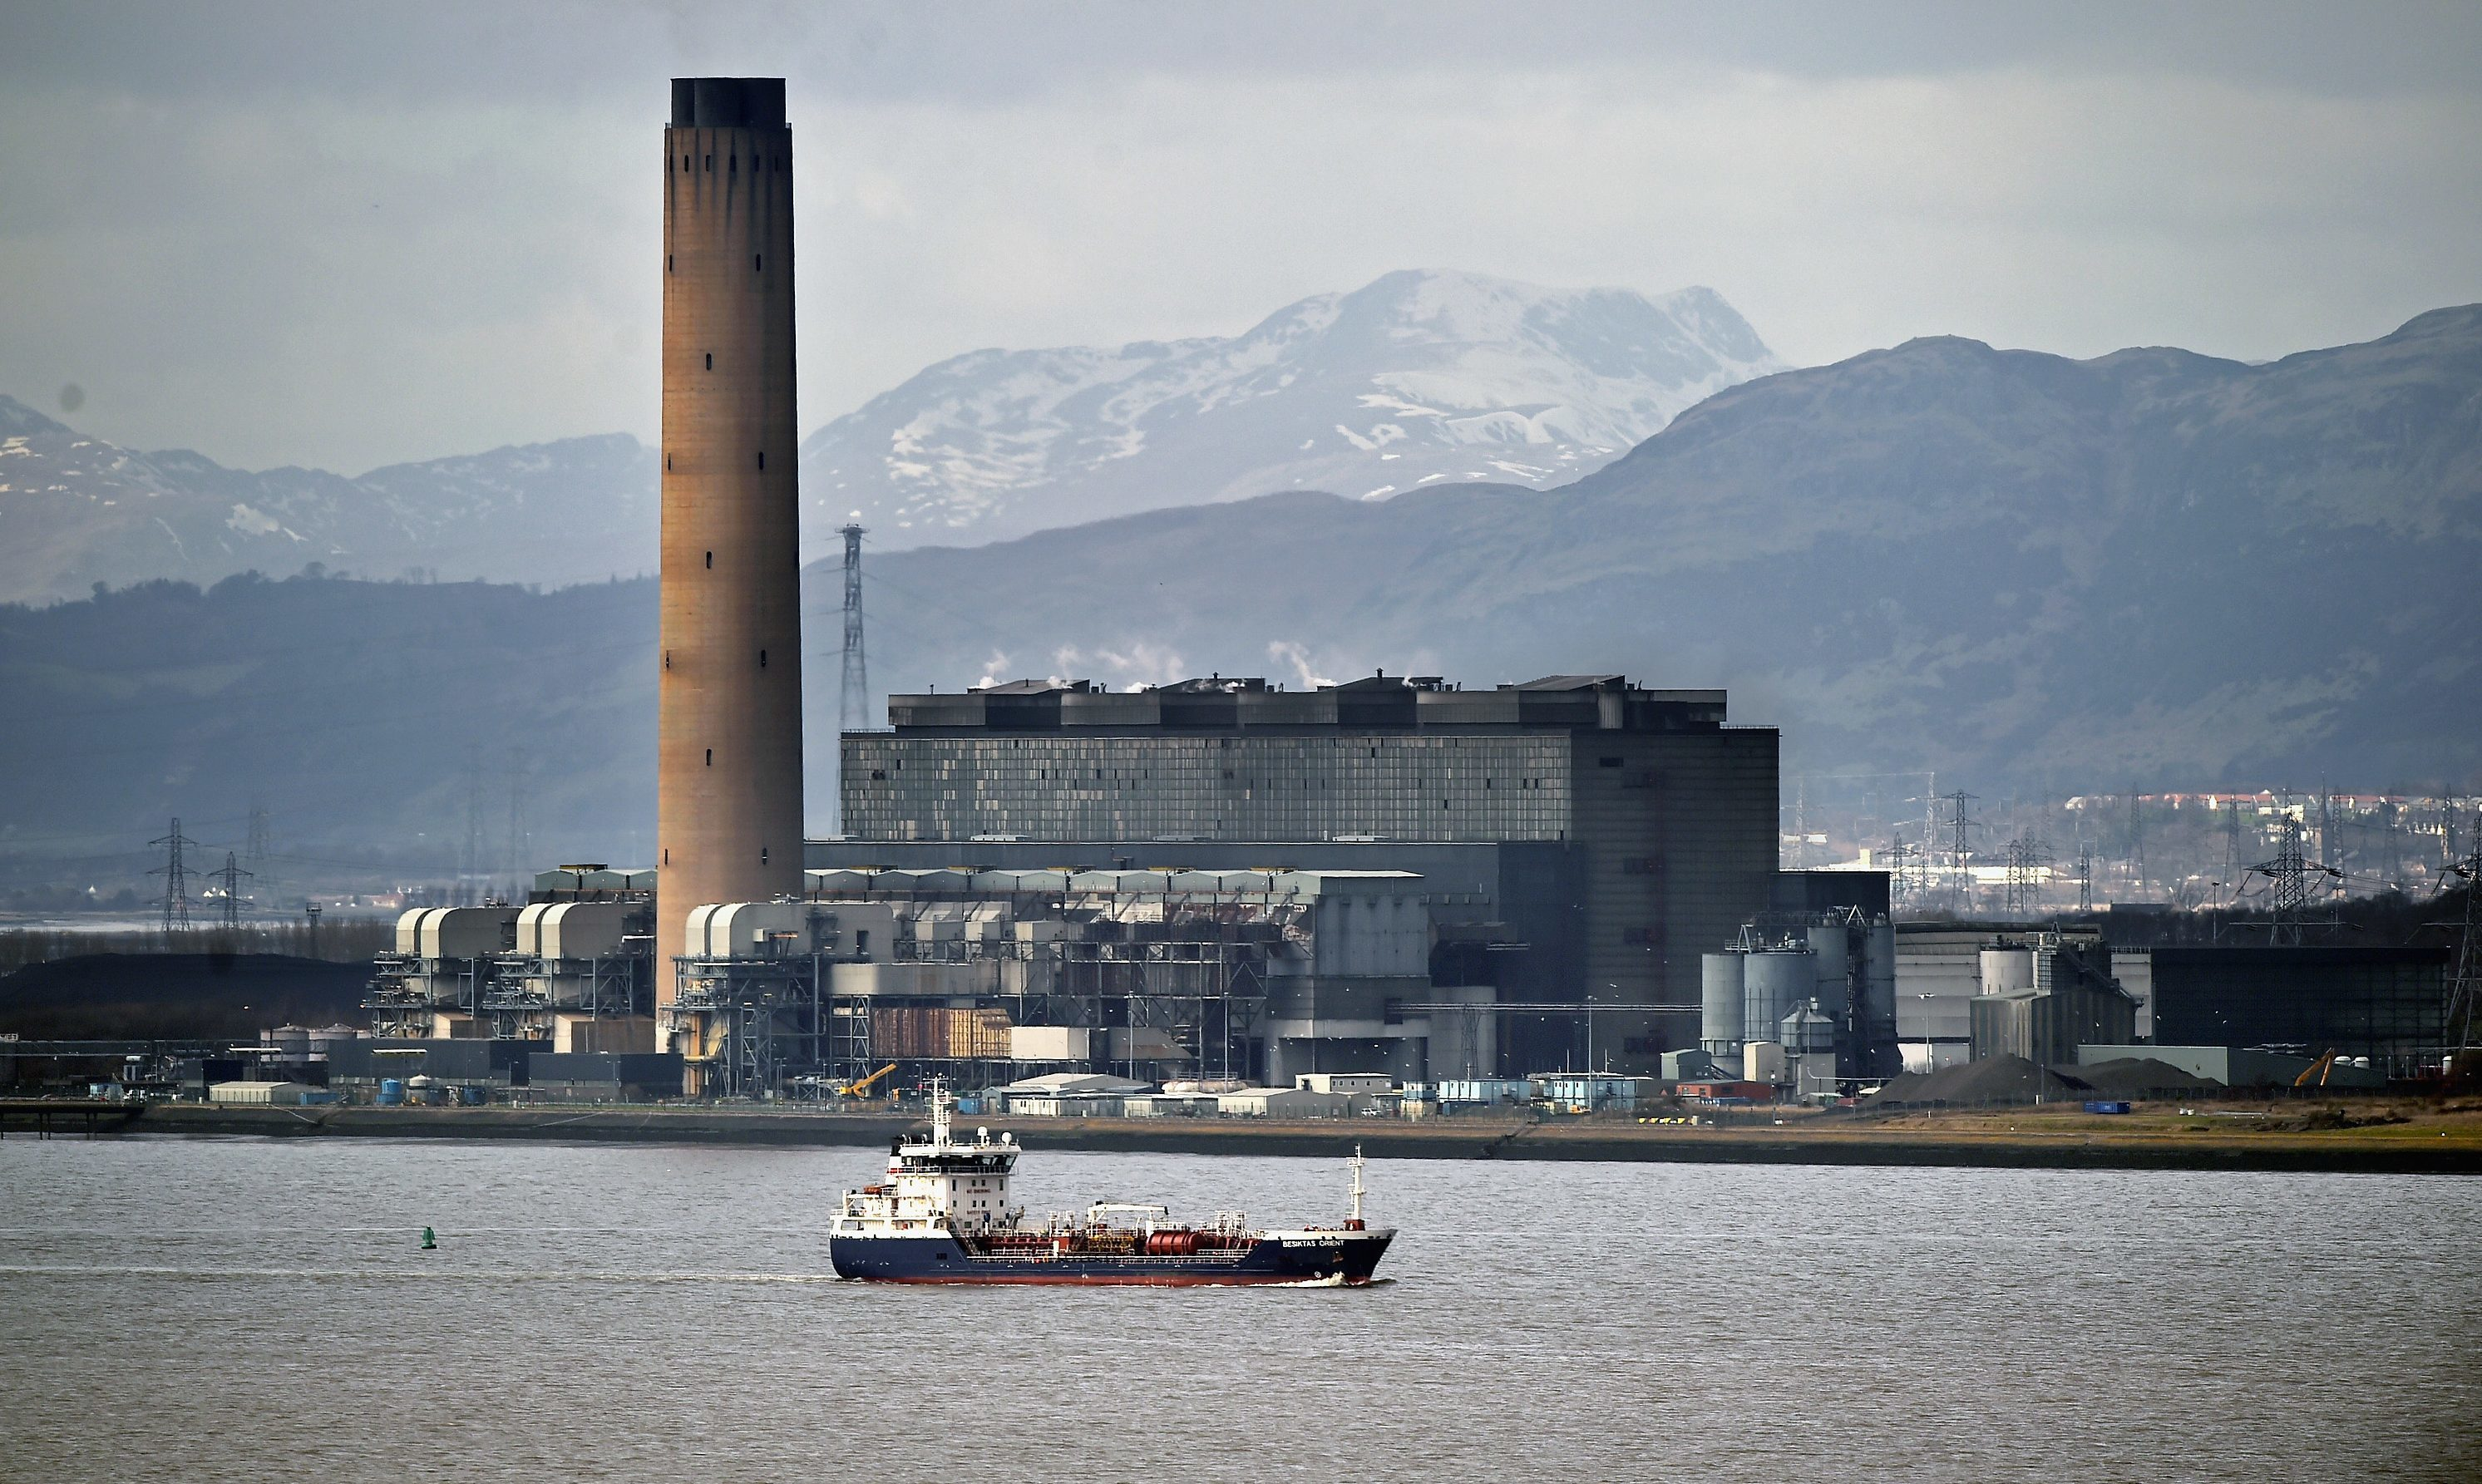 The power station closed in March 2016